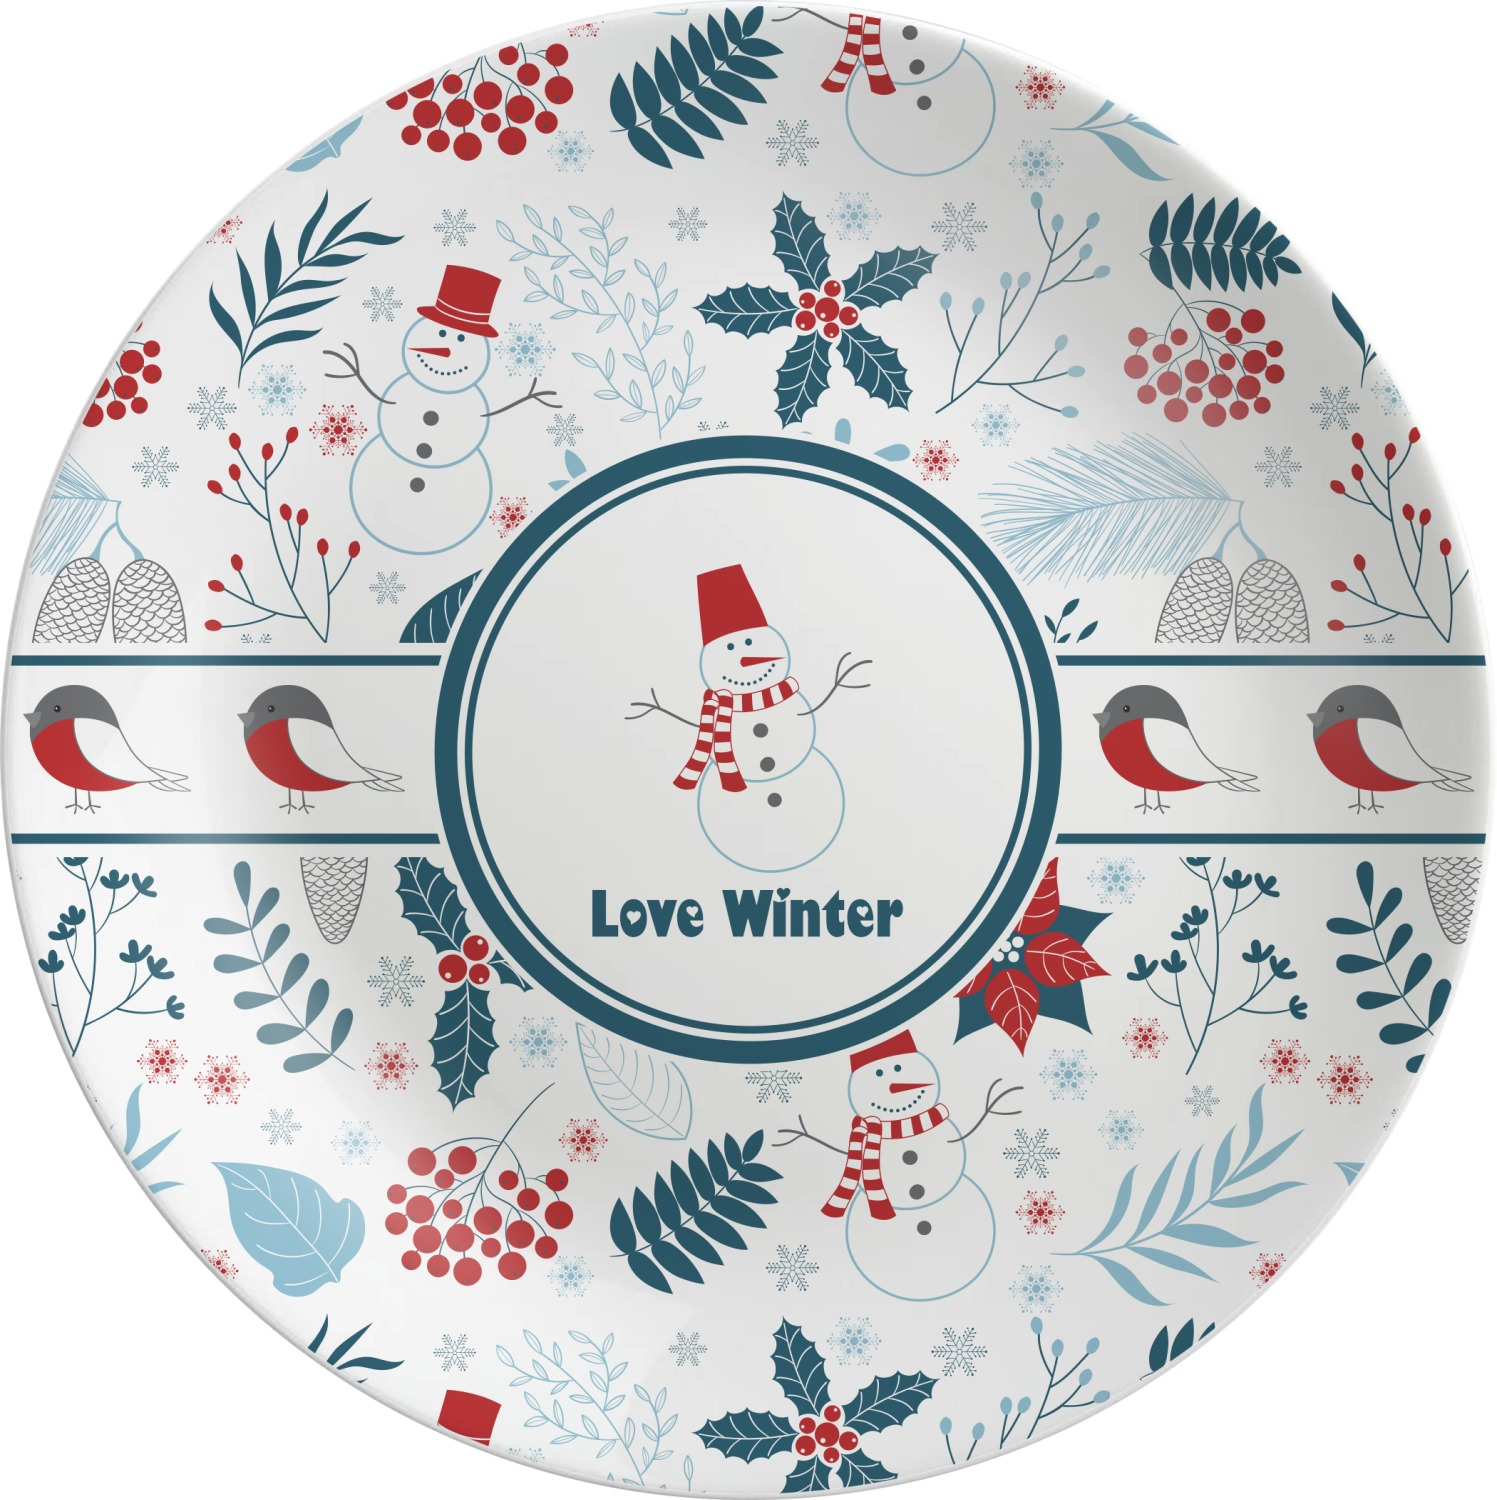 Winter Melamine Plate (Personalized)  sc 1 st  YouCustomizeIt & Winter Melamine Plate (Personalized) - YouCustomizeIt